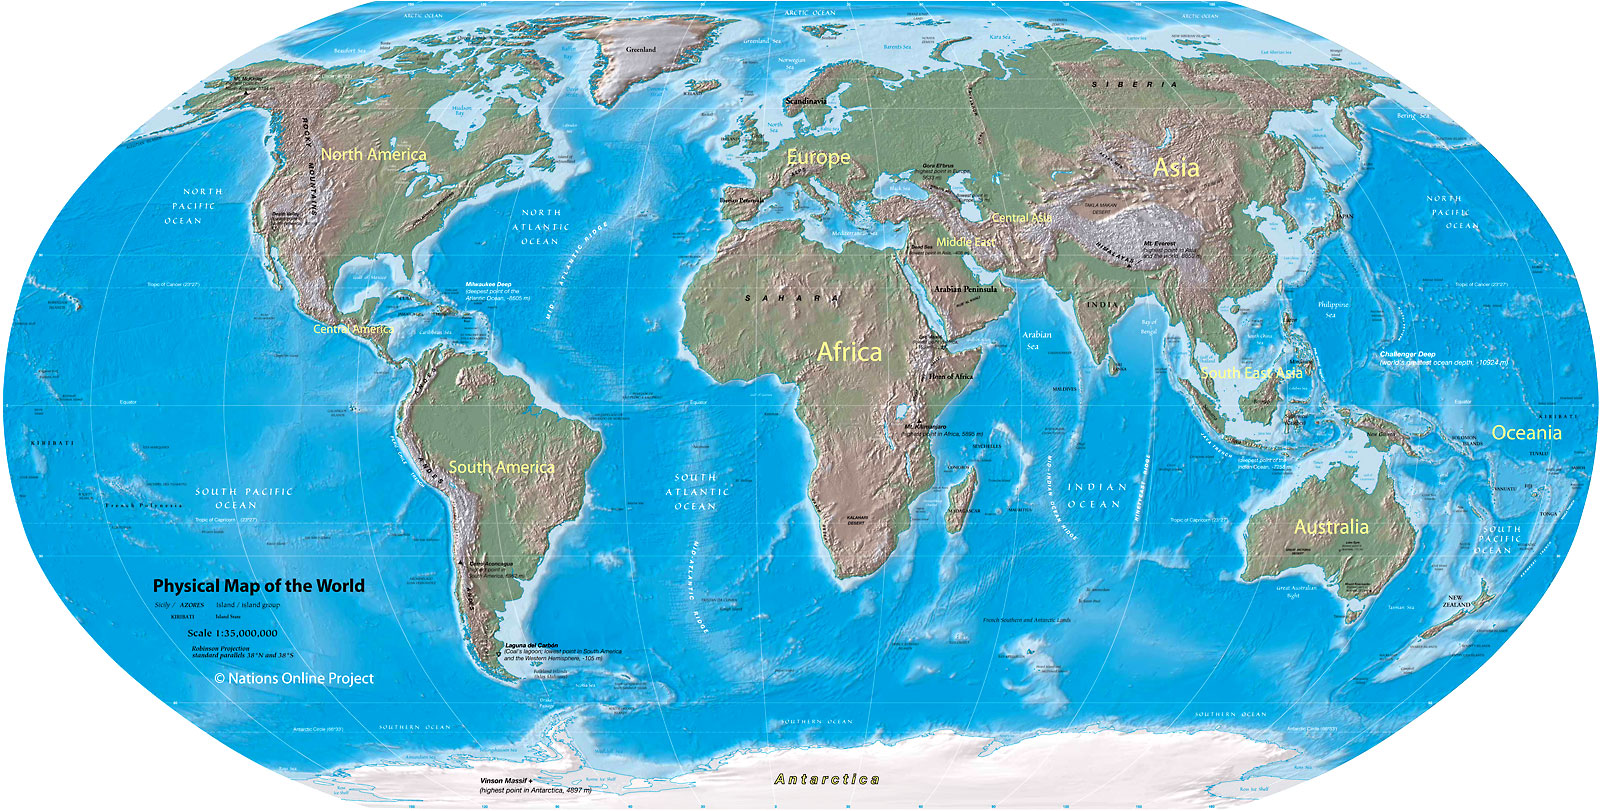 World map physical map of the world nations online project physical map of the world 855px gumiabroncs Image collections